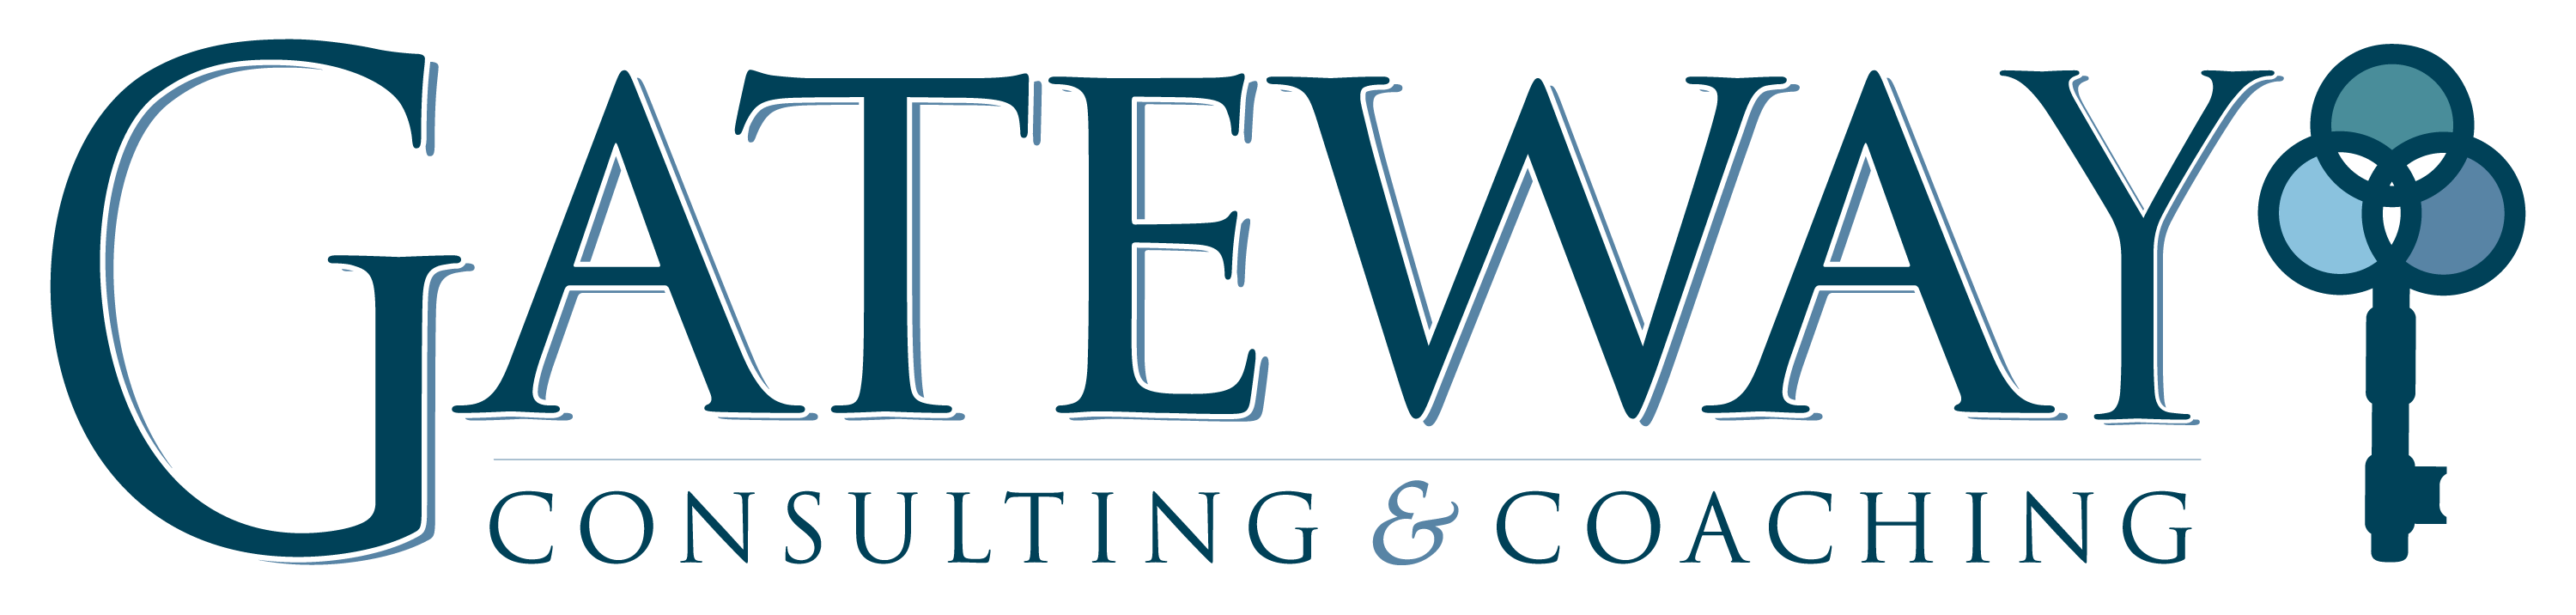 Gateway Consulting and Coaching